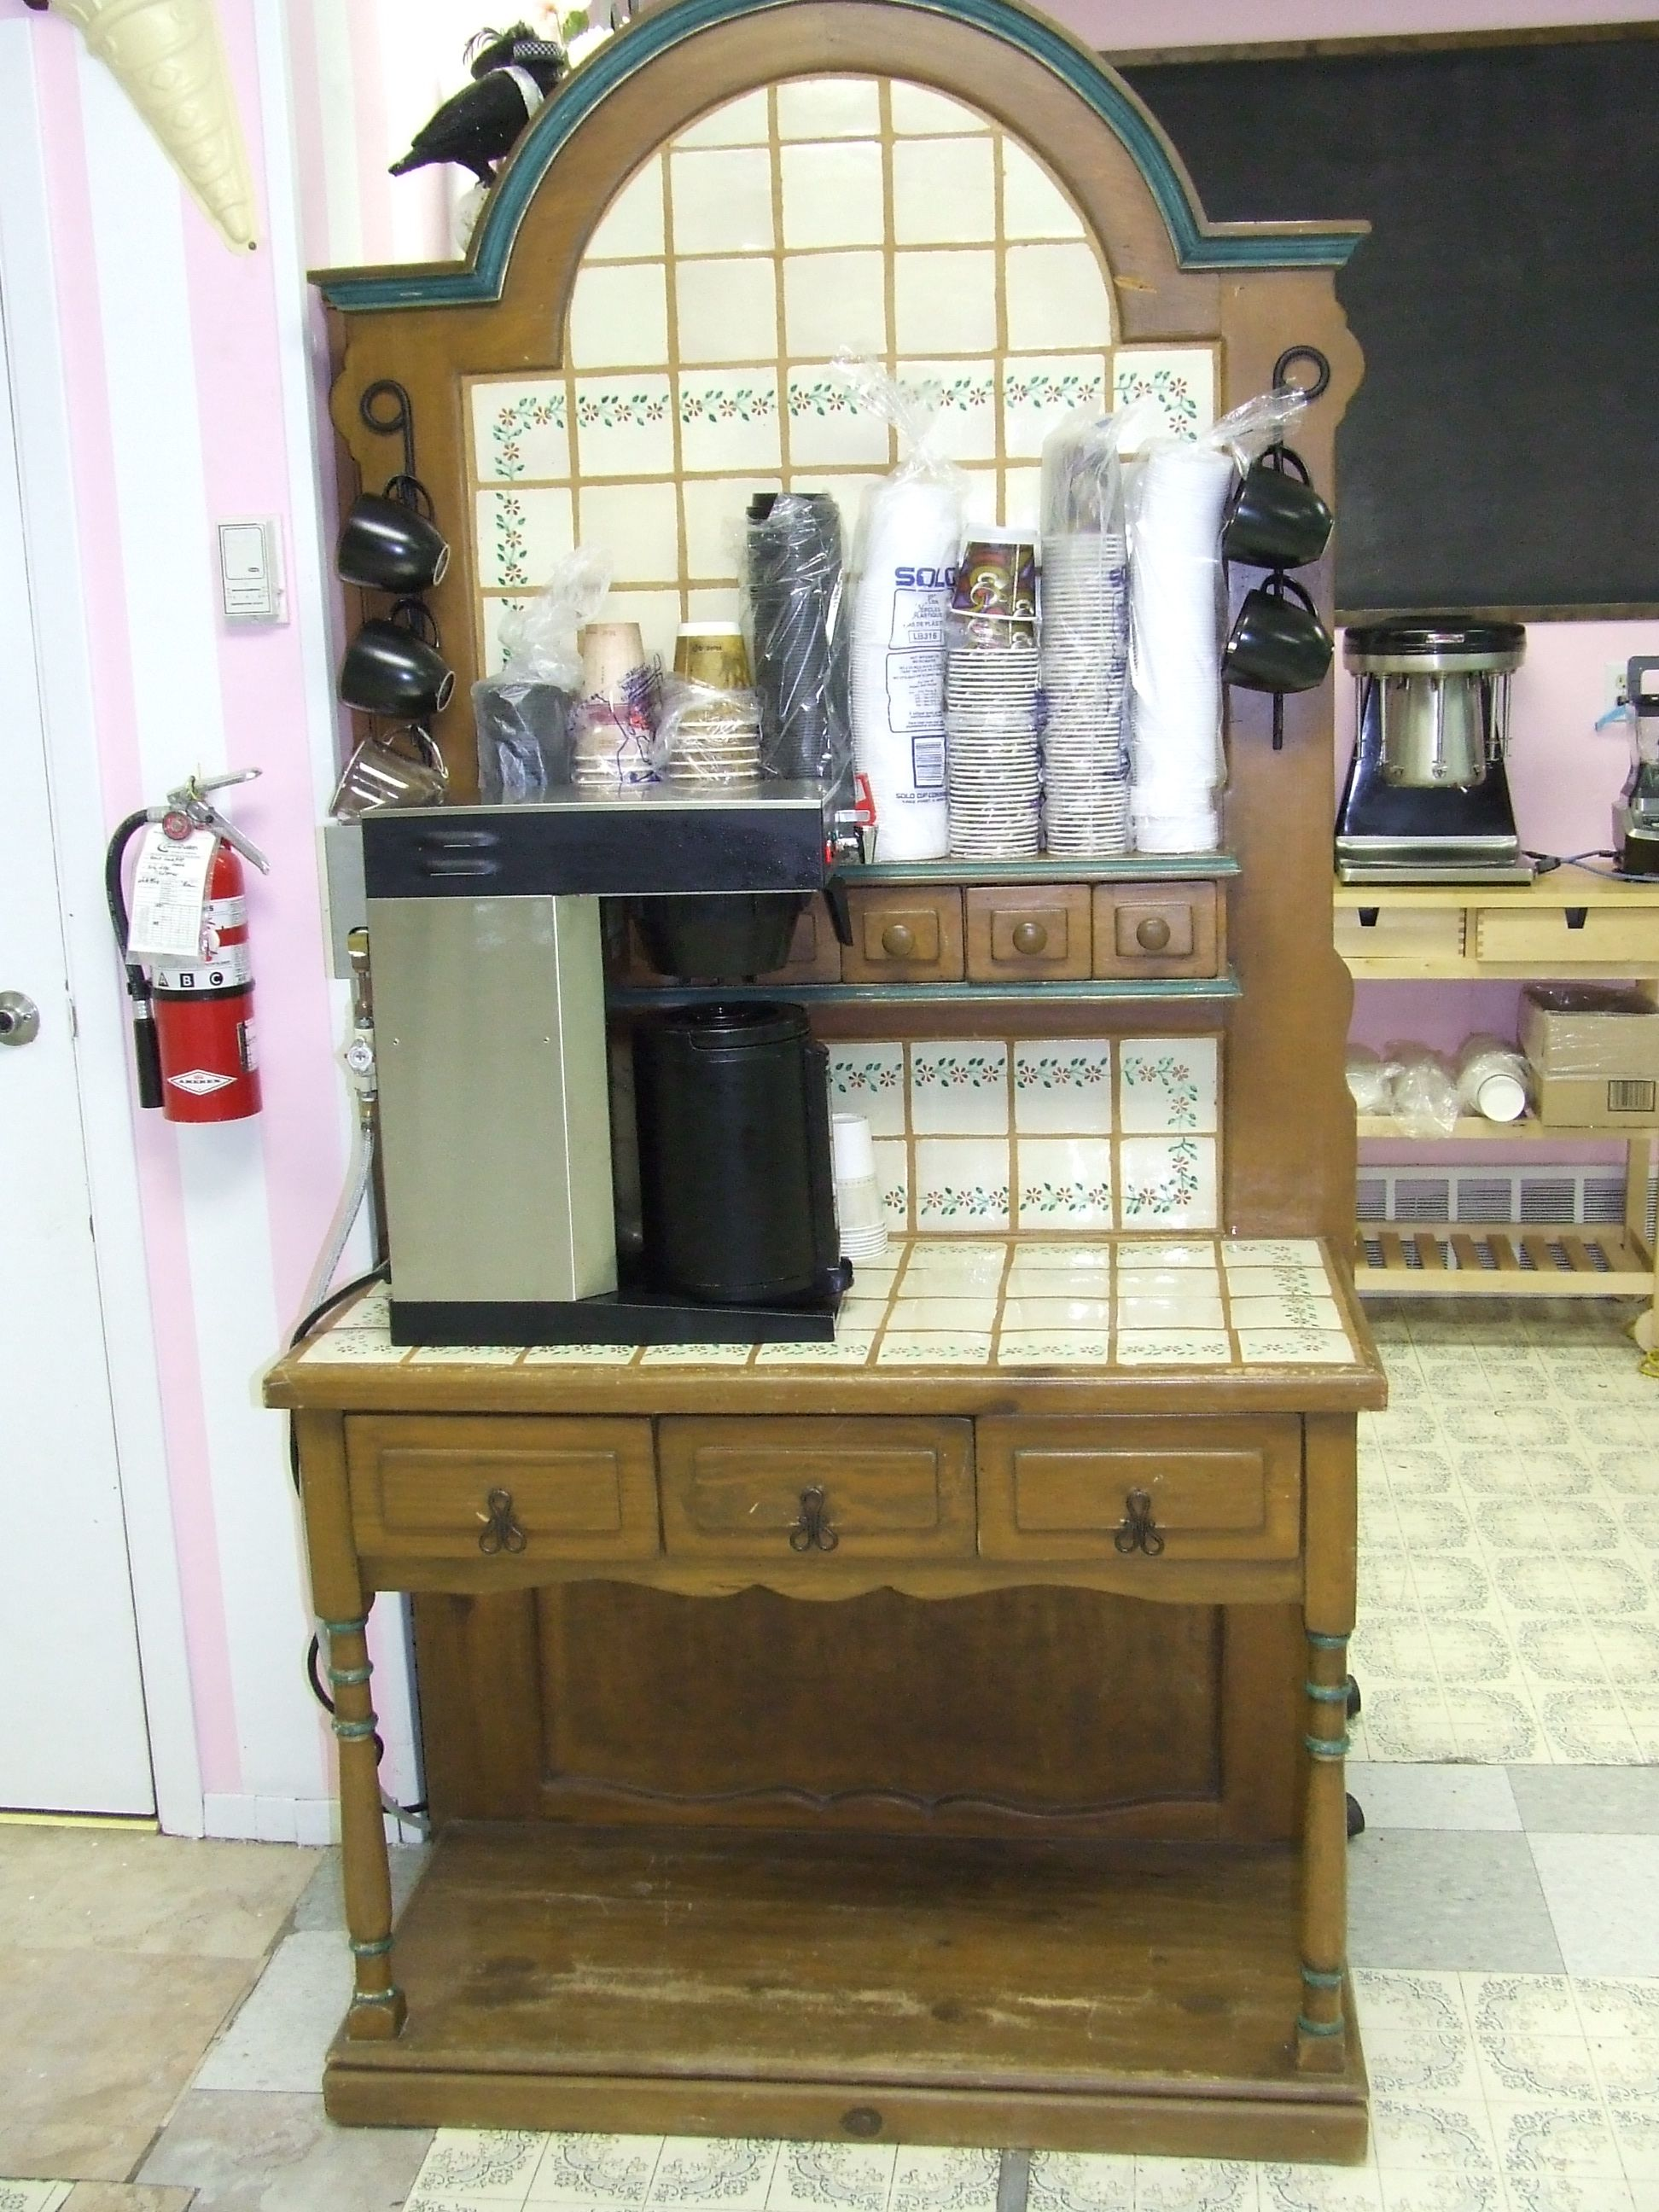 Furniture stores in red deer ab - Love This Piece Sold Wood Coffee Bar Colours Of Store Are Cotton Candy Pink